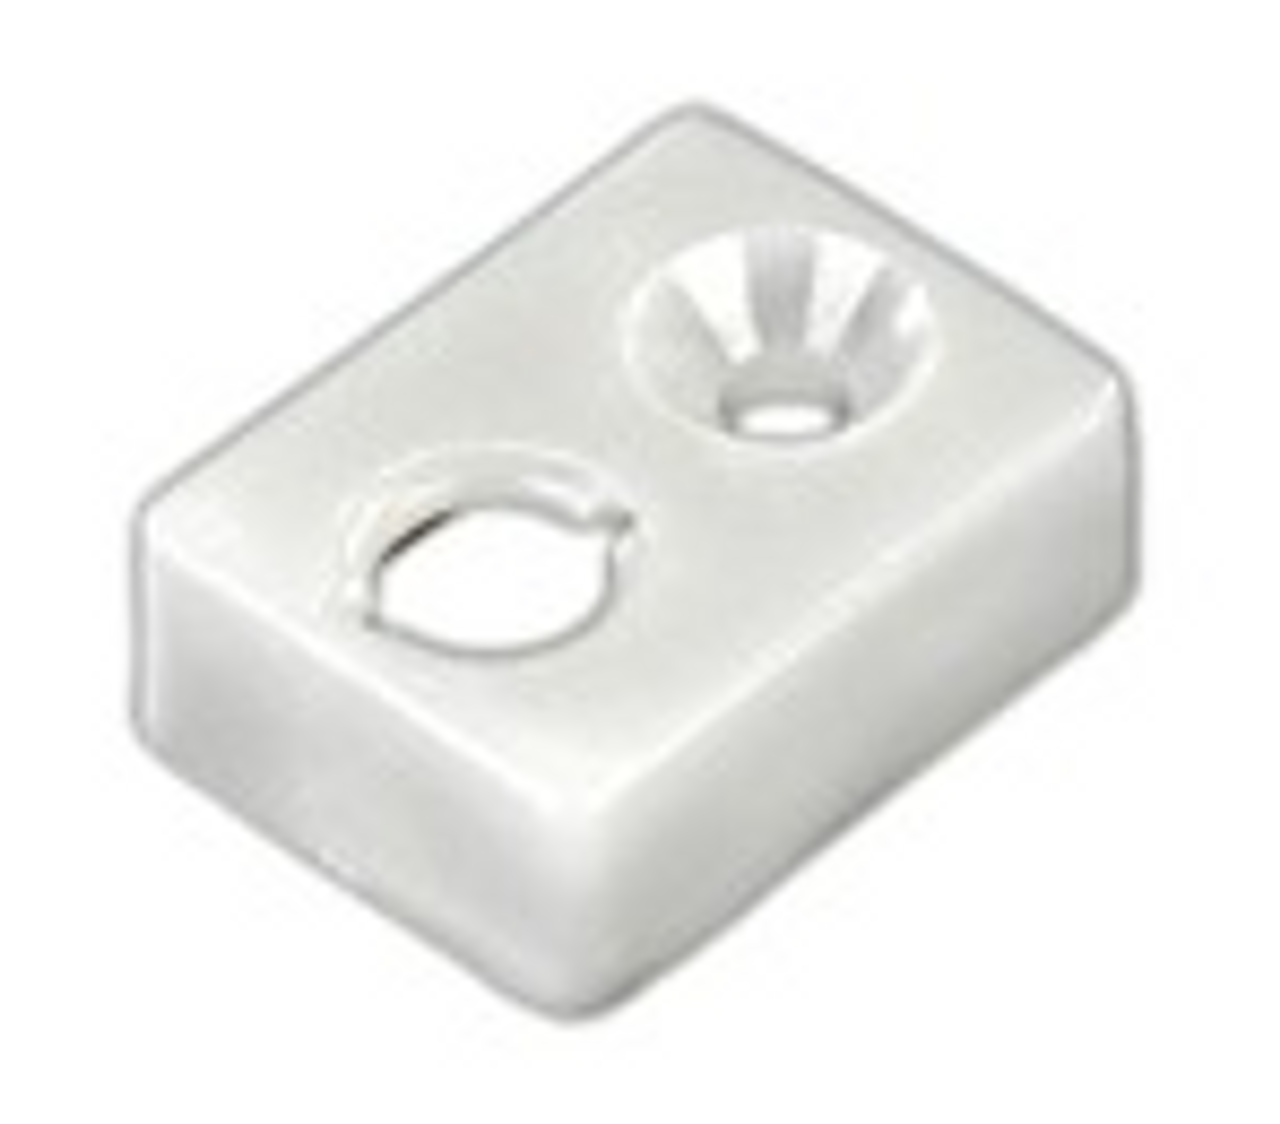 CURTAIN TRACK END STOP TYPE E - WHITE (20-1131)